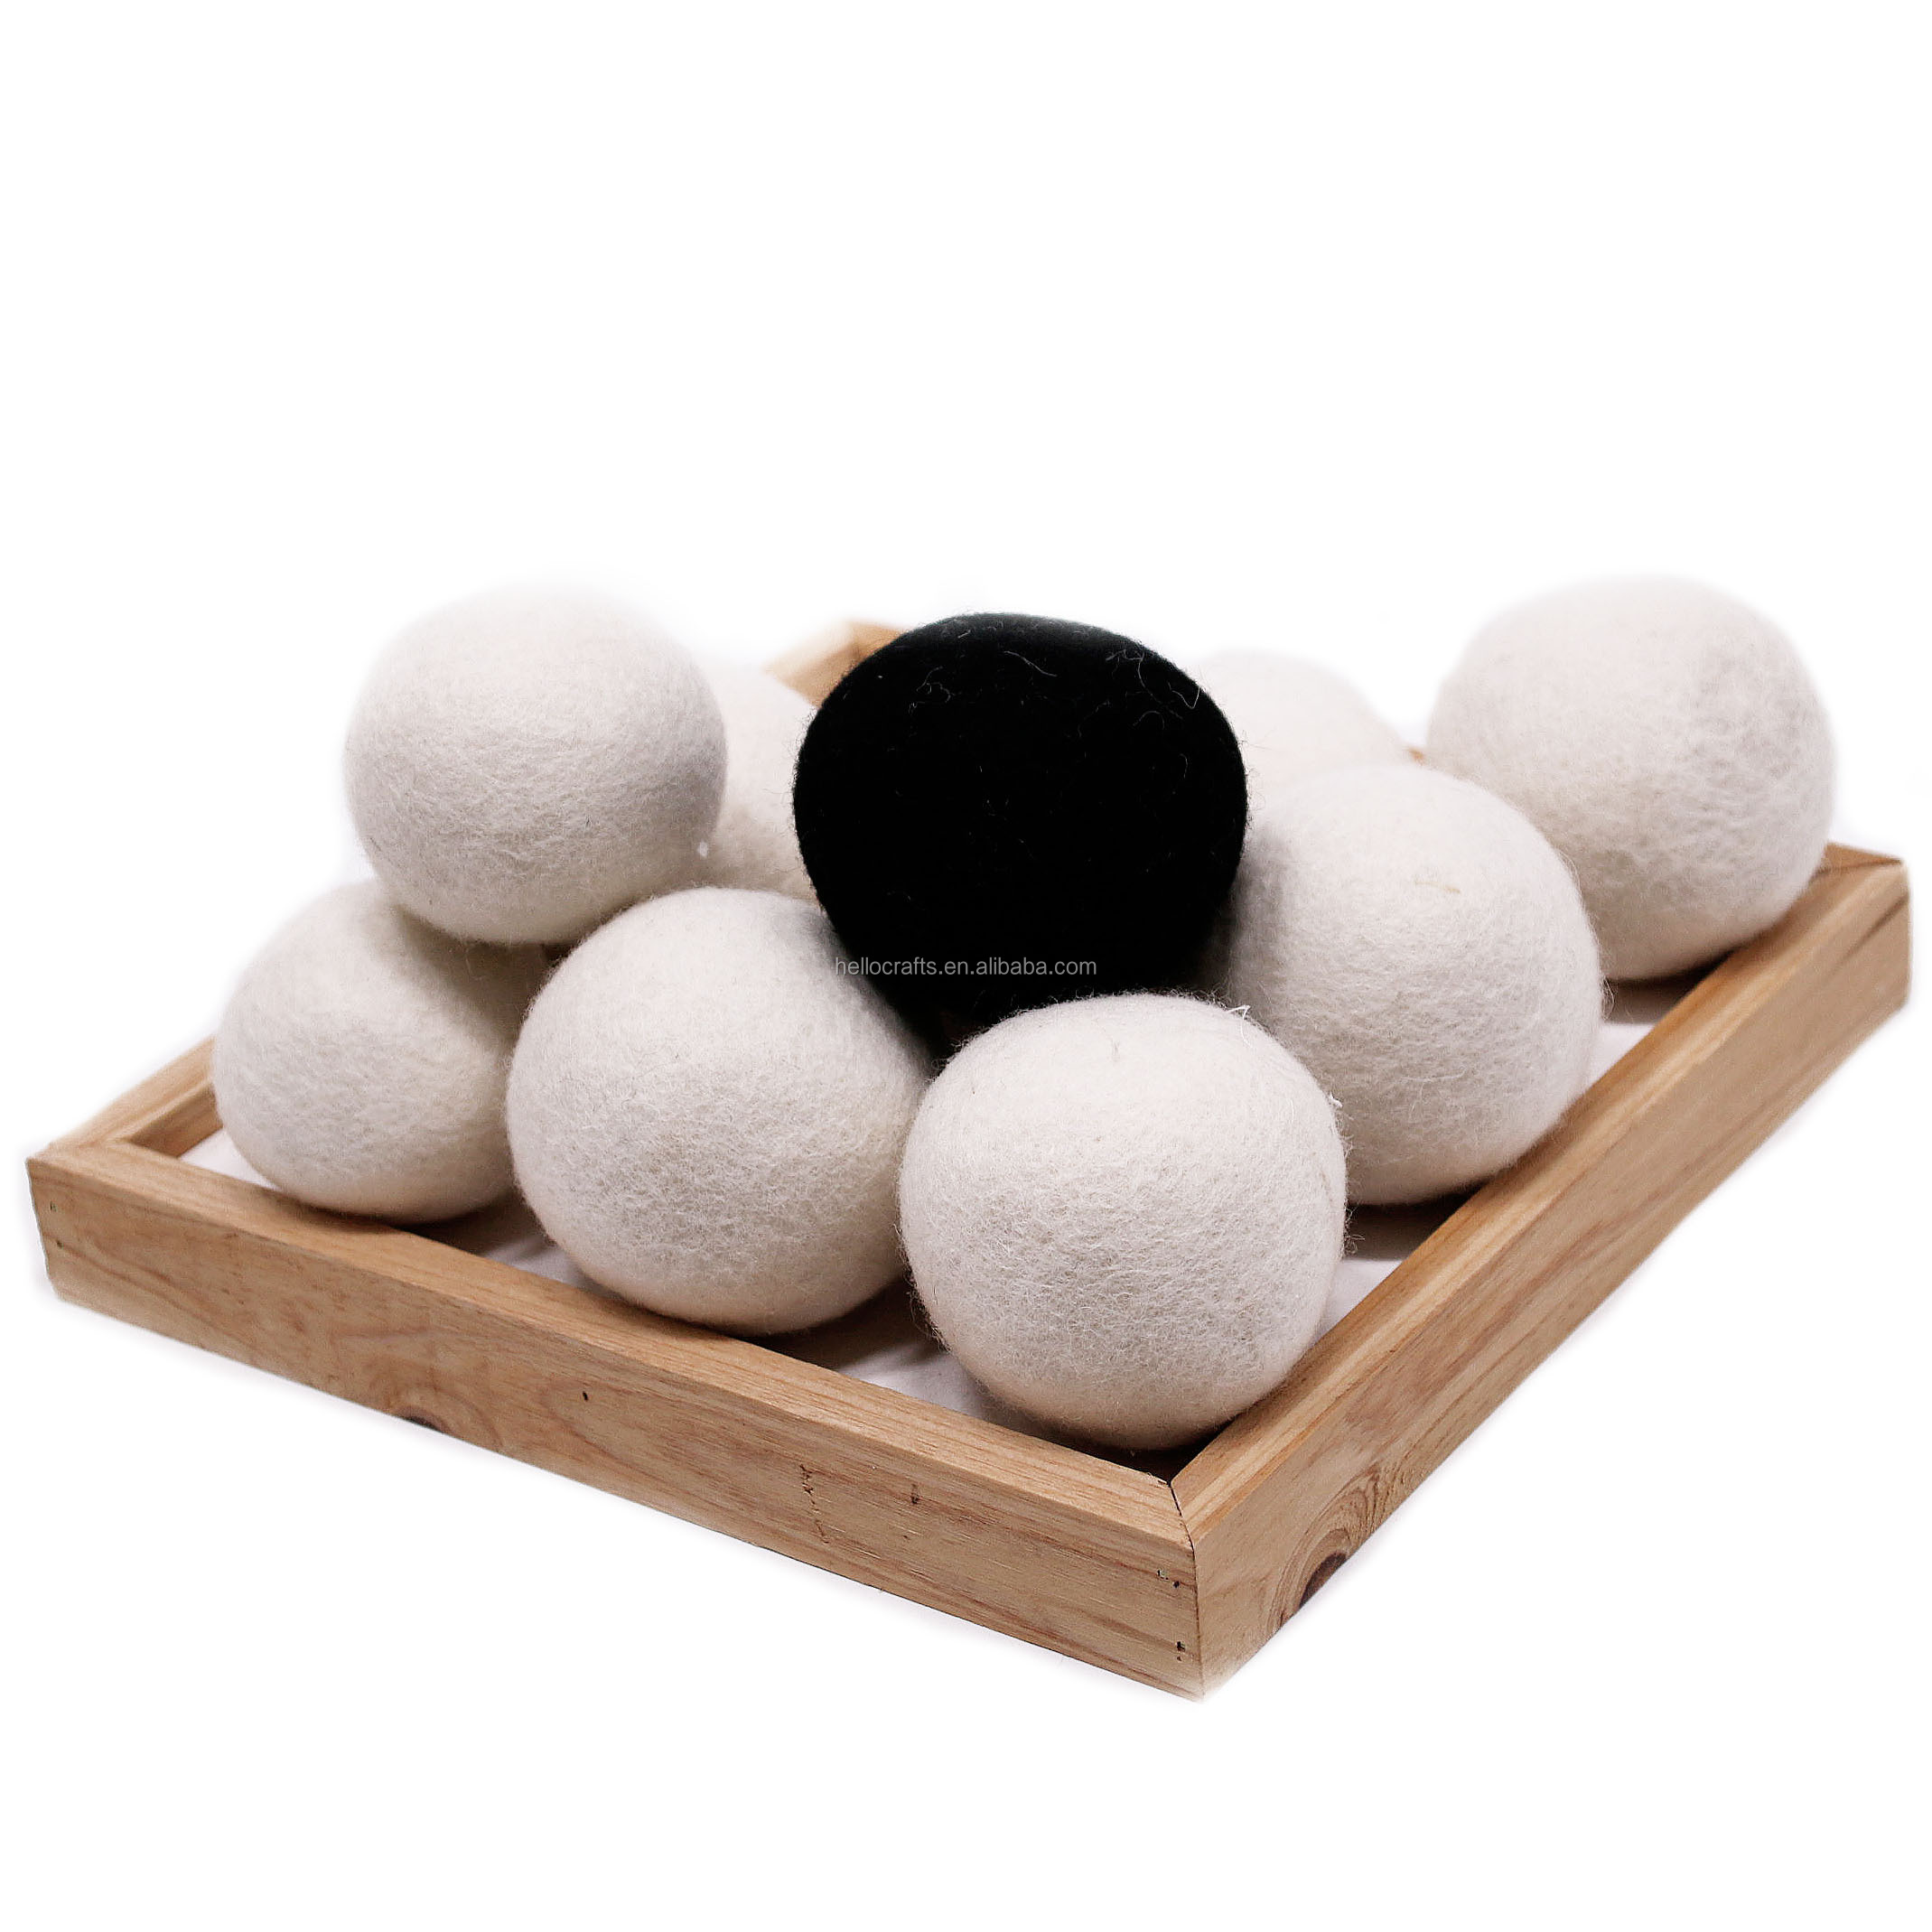 All kinds of 7 cm 7.5 cm 8 cm 9 cm anti static wool dryer ball for washing articles for daily use